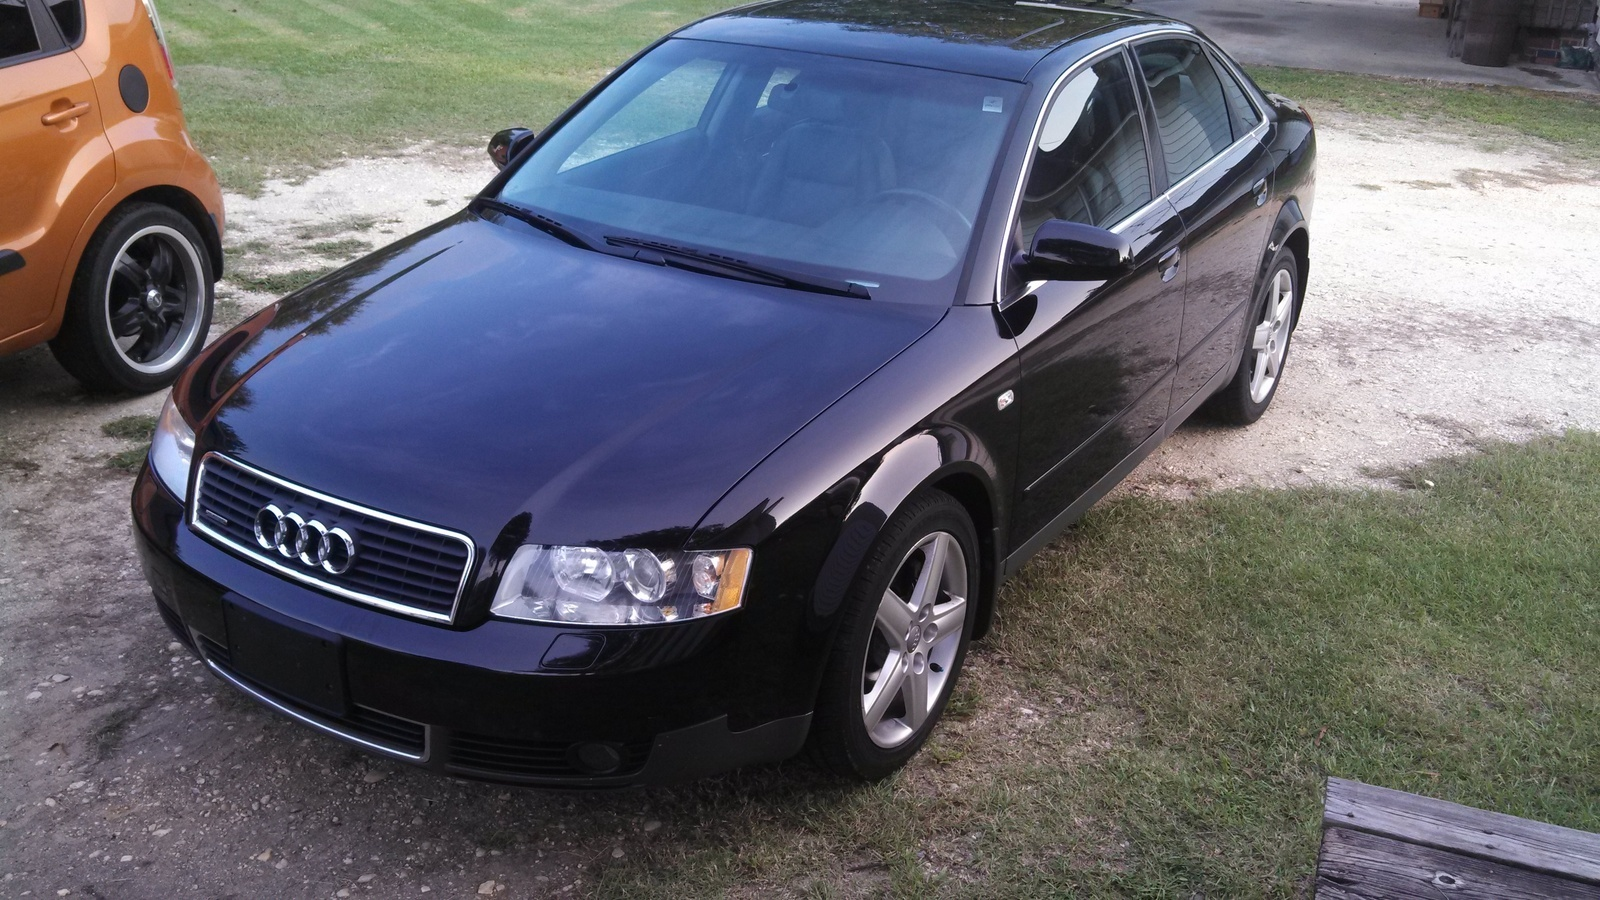 Audi A4 Questions - I have an 03 Audi A4 3.0 Quattro that wont start